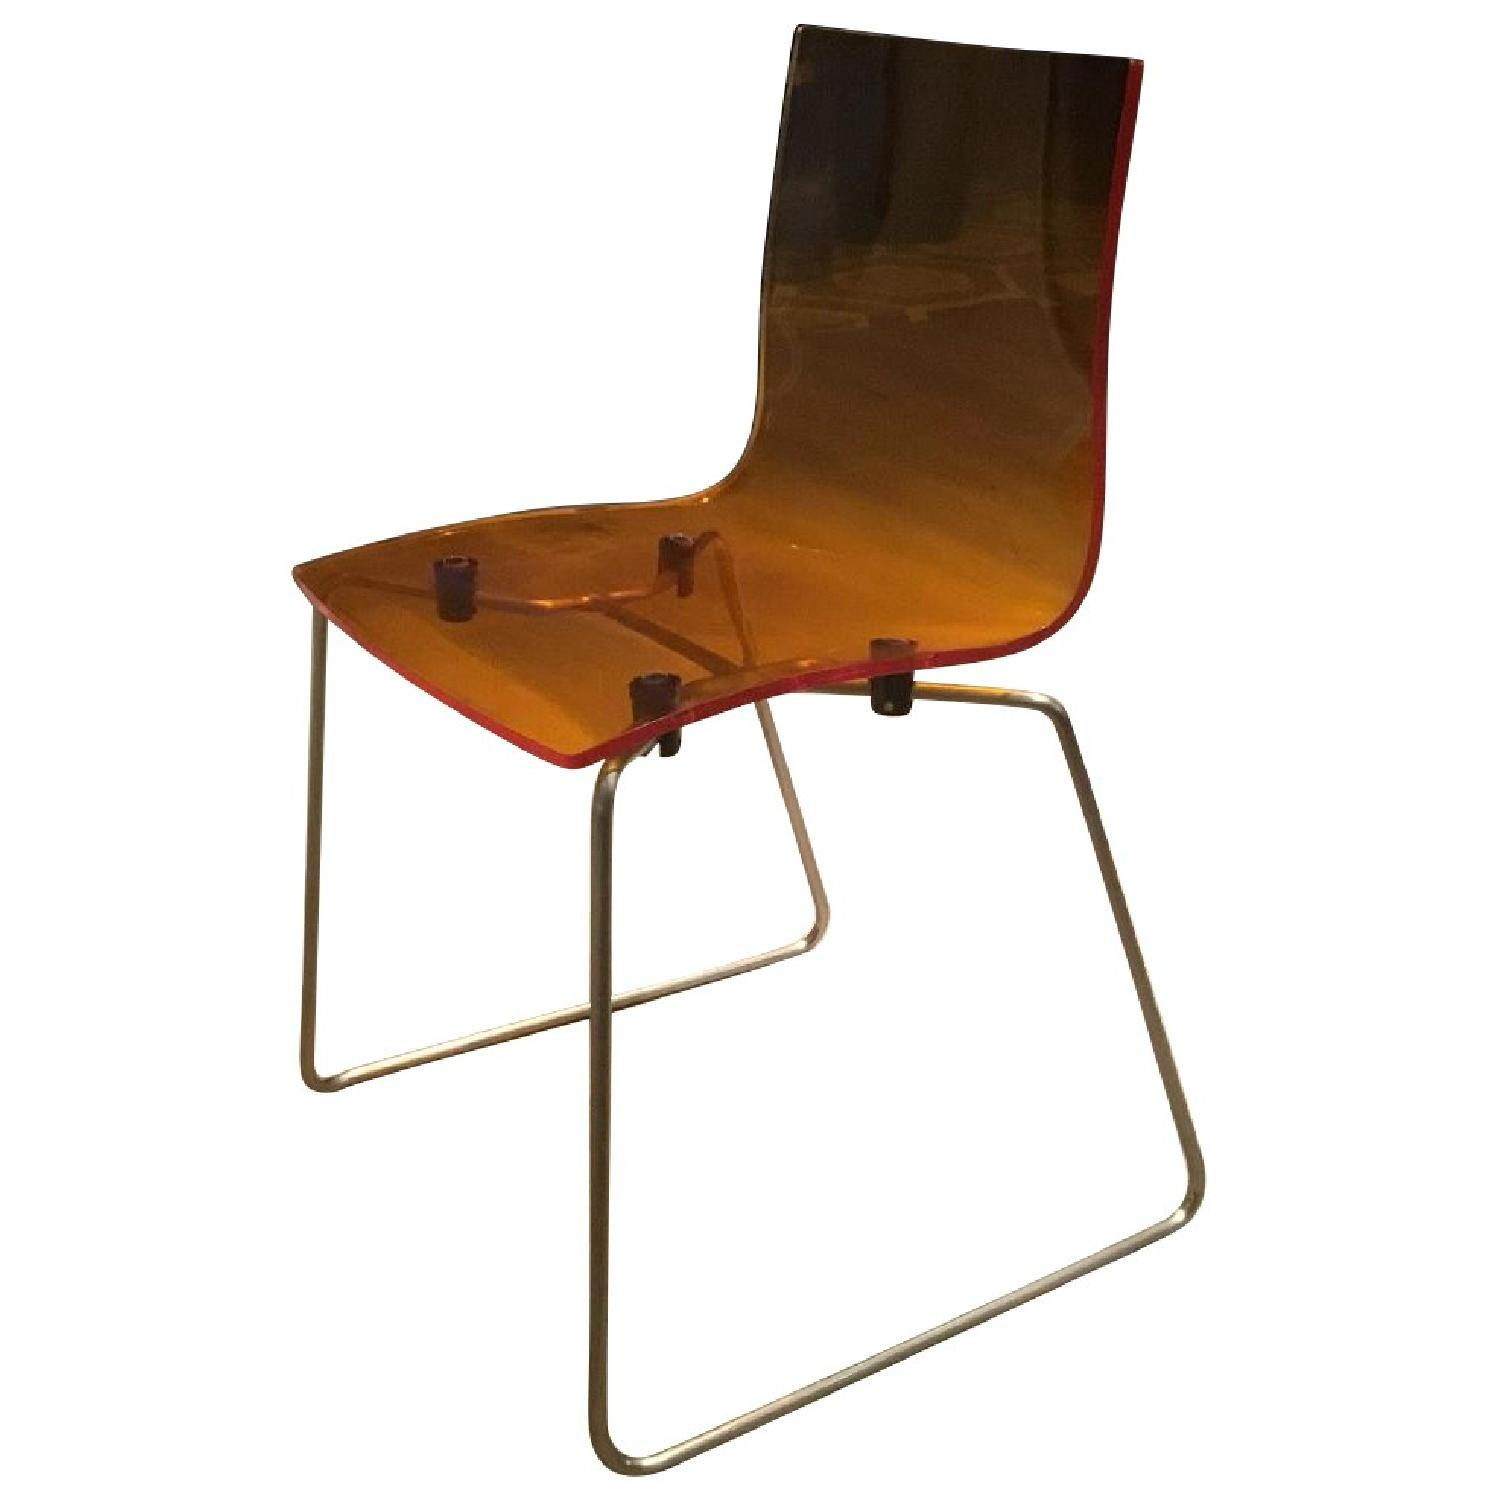 Kartell Acrylic Dining Chairs - image-0